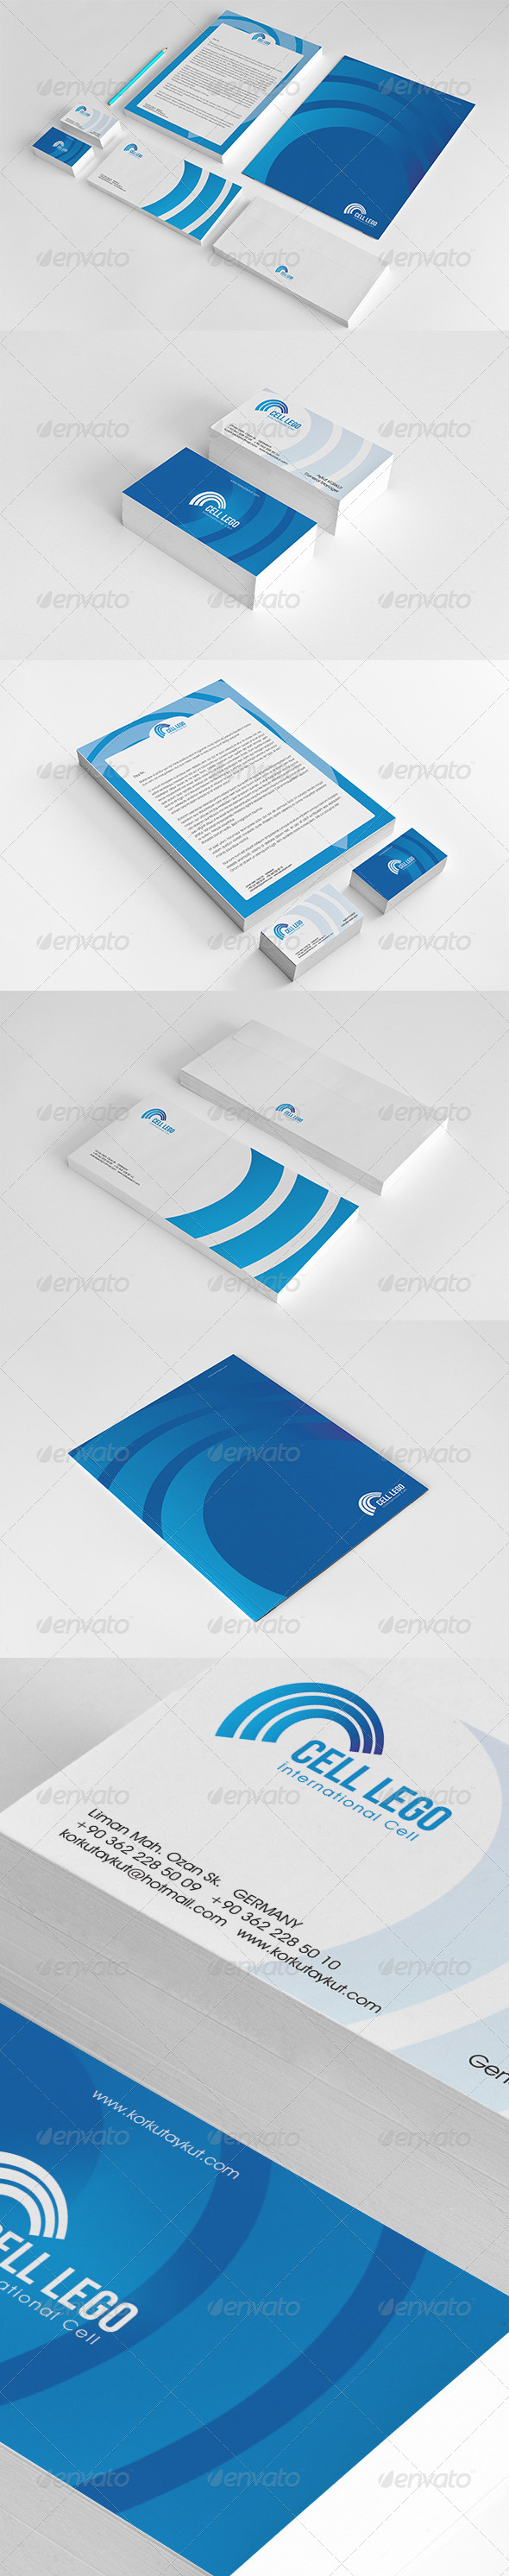 GraphicRiver Cell Corporate Identity Package 6885828